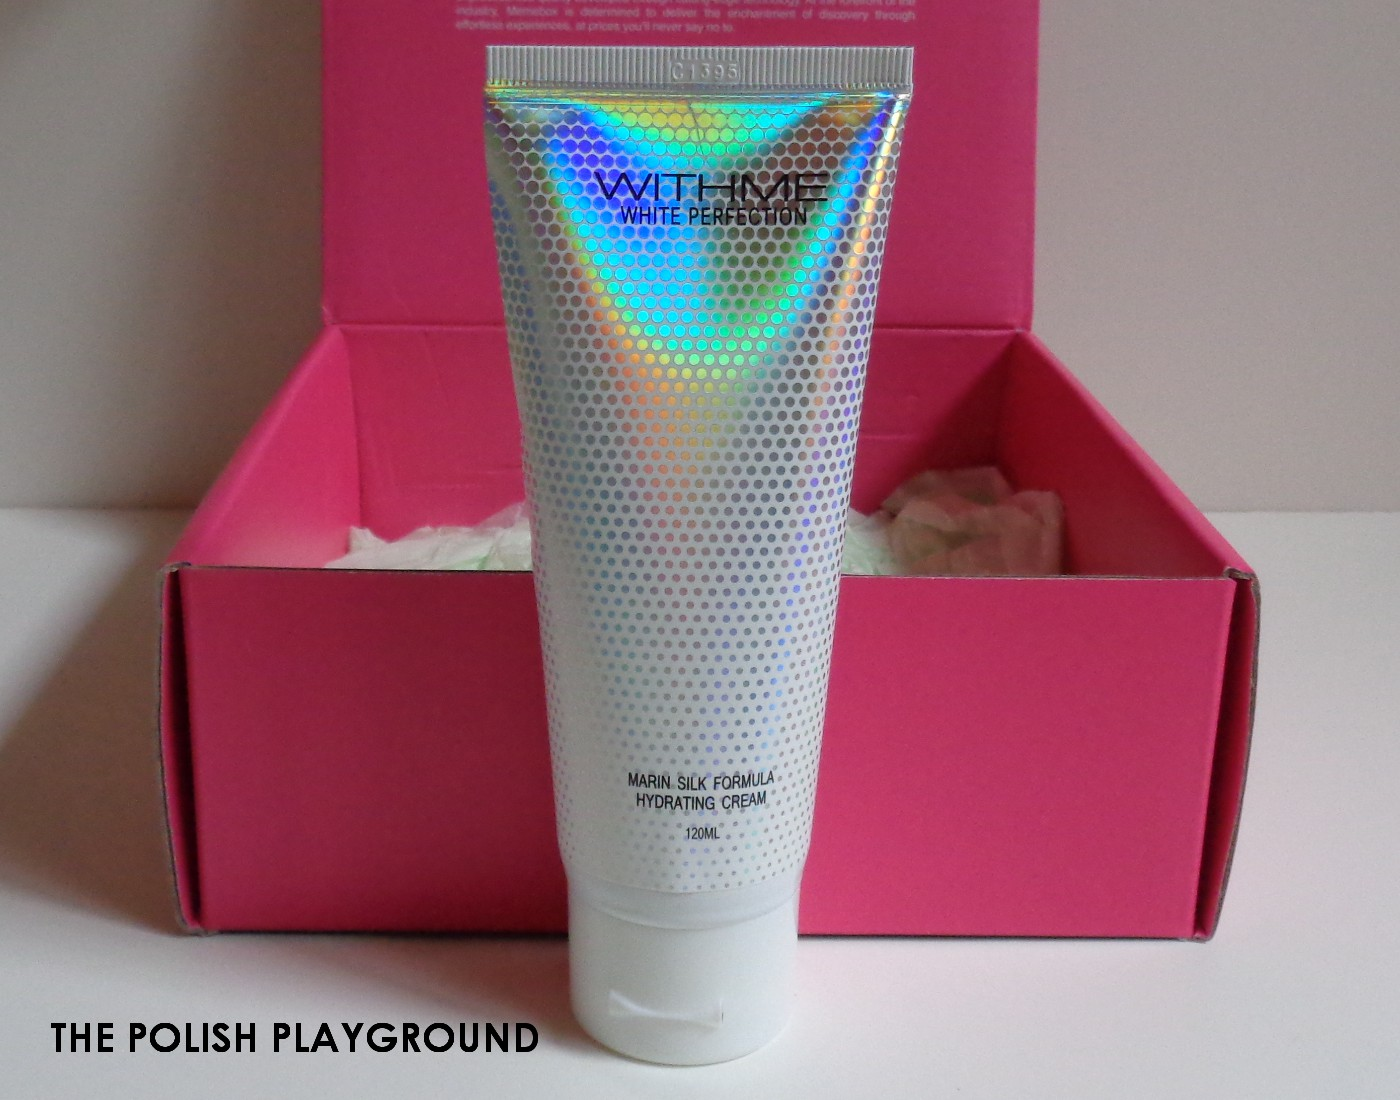 Memebox Special #73 Brighten & Correct Unboxing - WITHME White Perfection Hydrating Cream